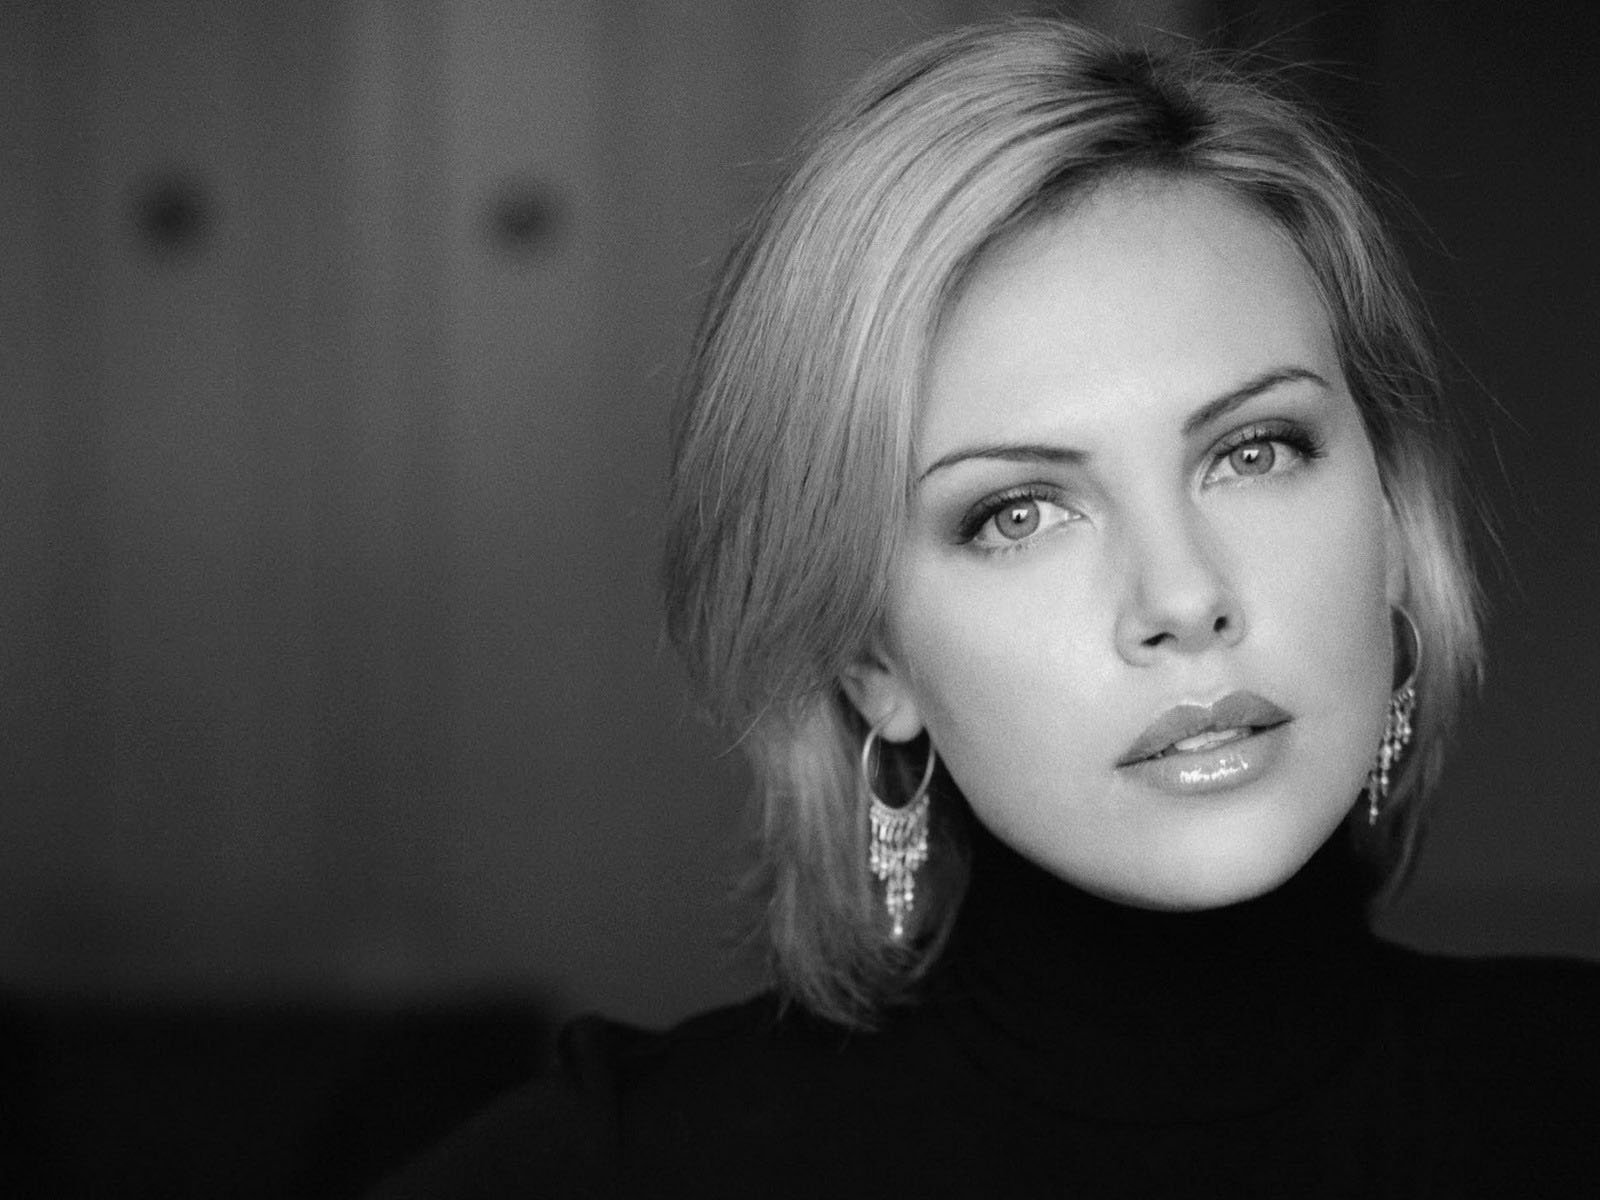 charming charlize theron pics hd download